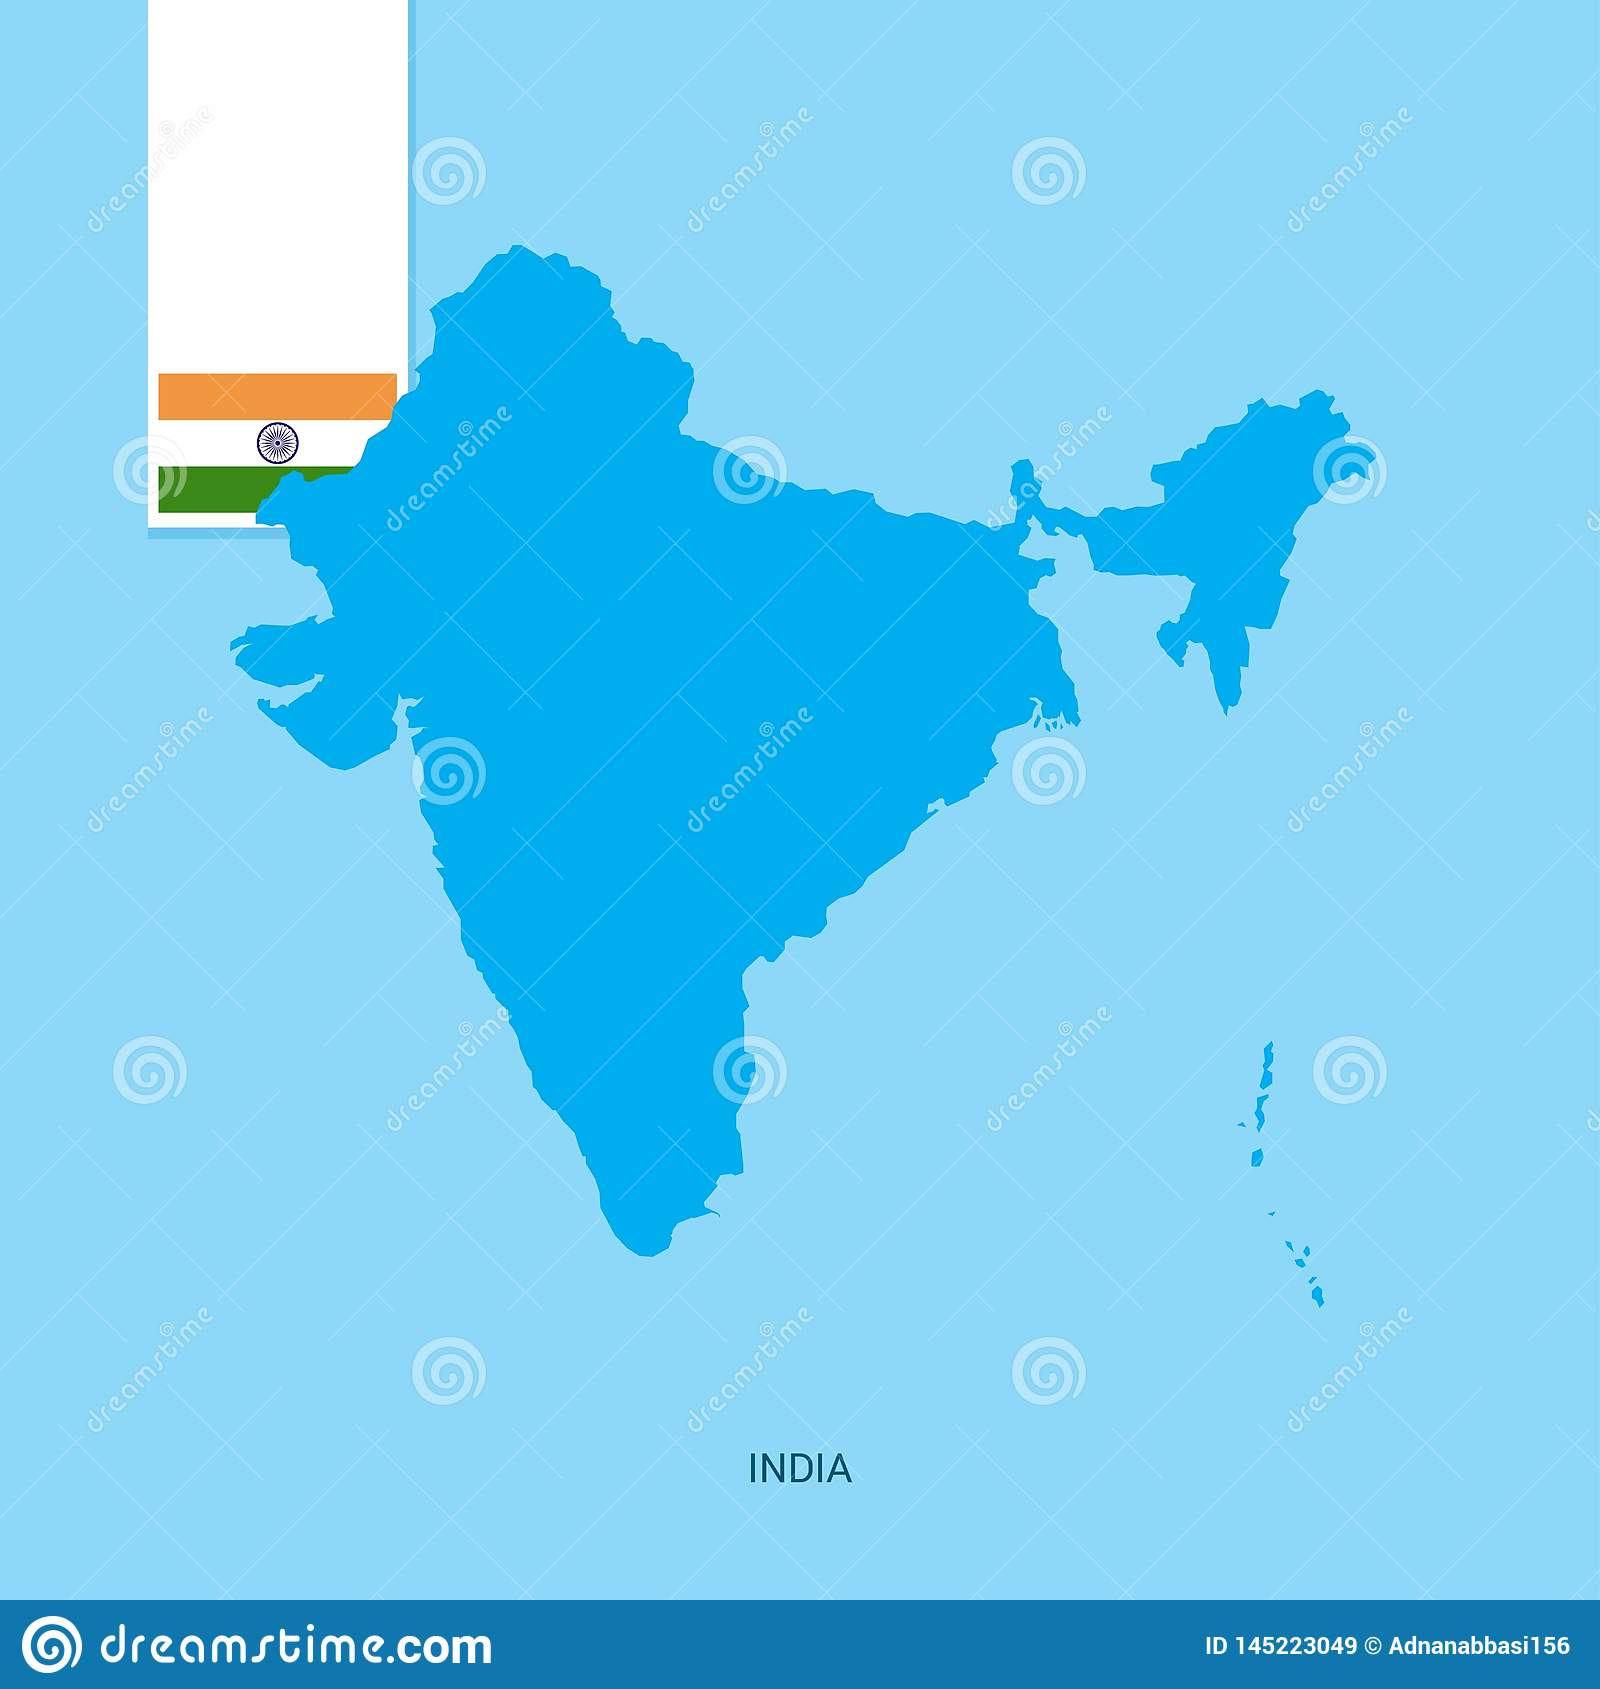 India Country Map With Flag Over Blue Background Stock Vector ... on india neighborhood map, gauhati india map, india uttarakhand rishikesh, india physical and political map, green india map, hindu kush mountains map, india state map, united states of america, rural india map, world map, south asia map, india map with bodies of water, india map recent, india continent map, taj mahal india location on map, india russia map, india hampi map, india physical map of rivers, india animal symbol, india khyber pass location, sri lanka, export by countries map,